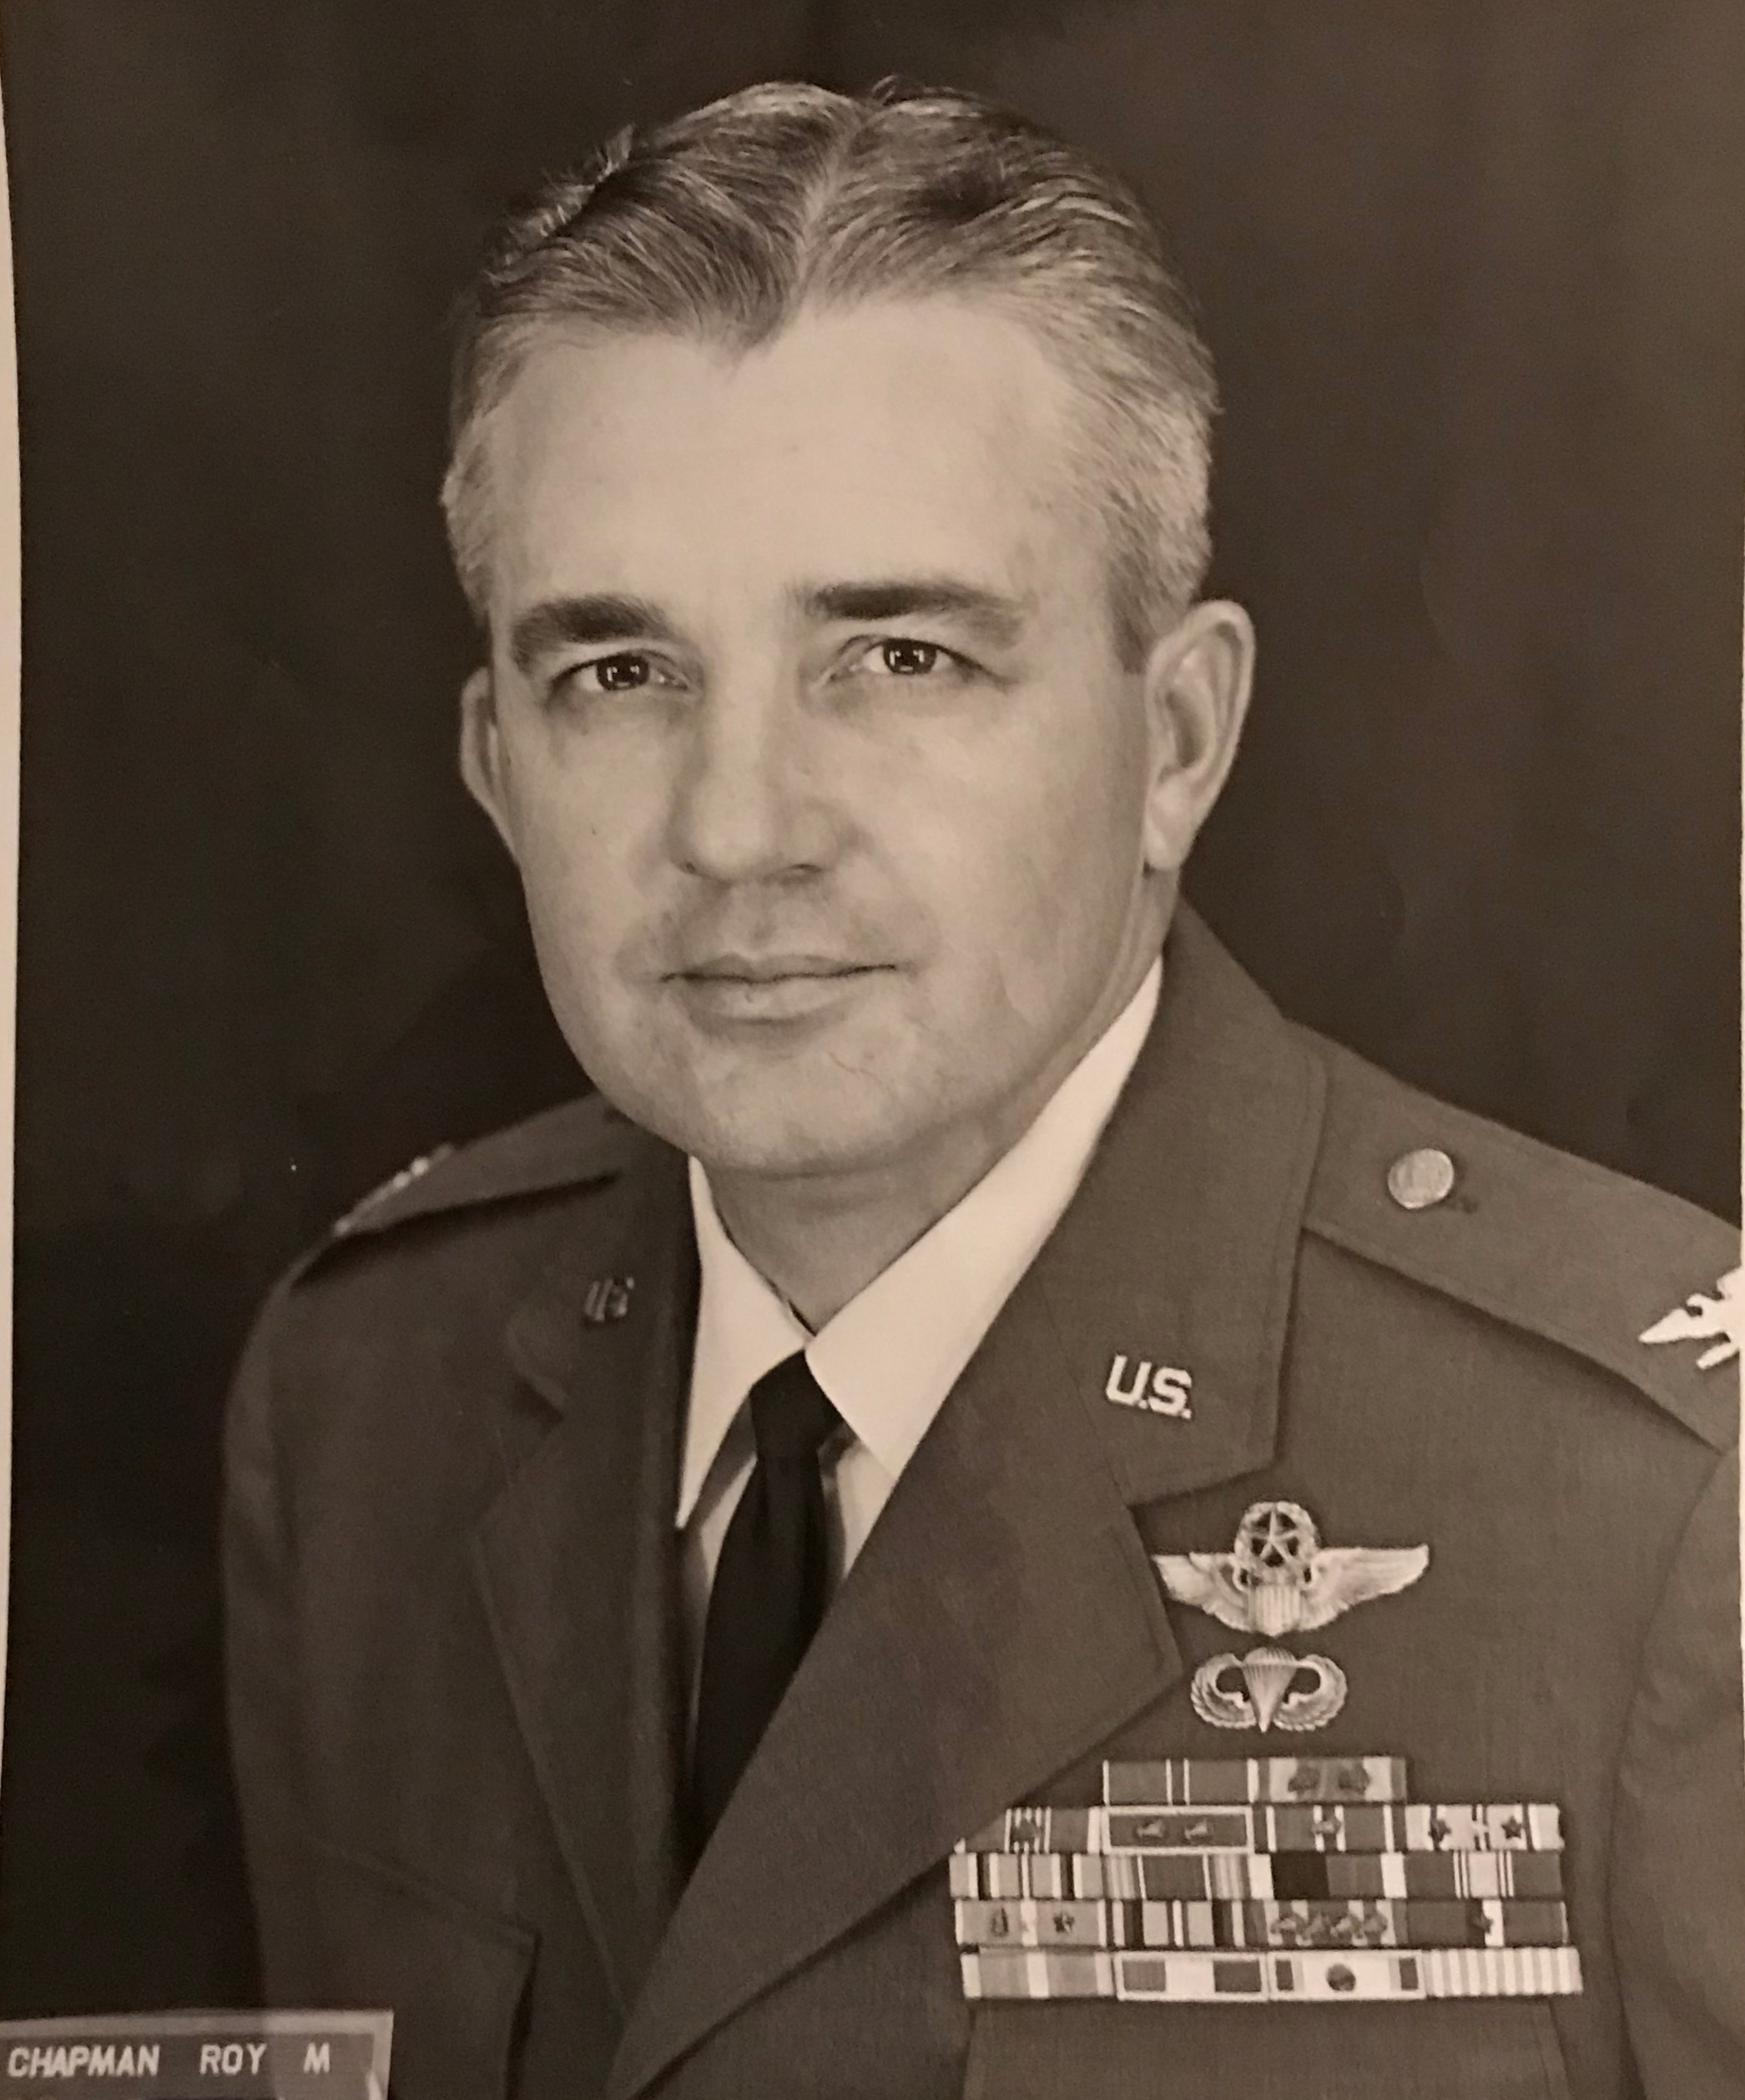 COL Roy M. Chapman - my Grandfather.